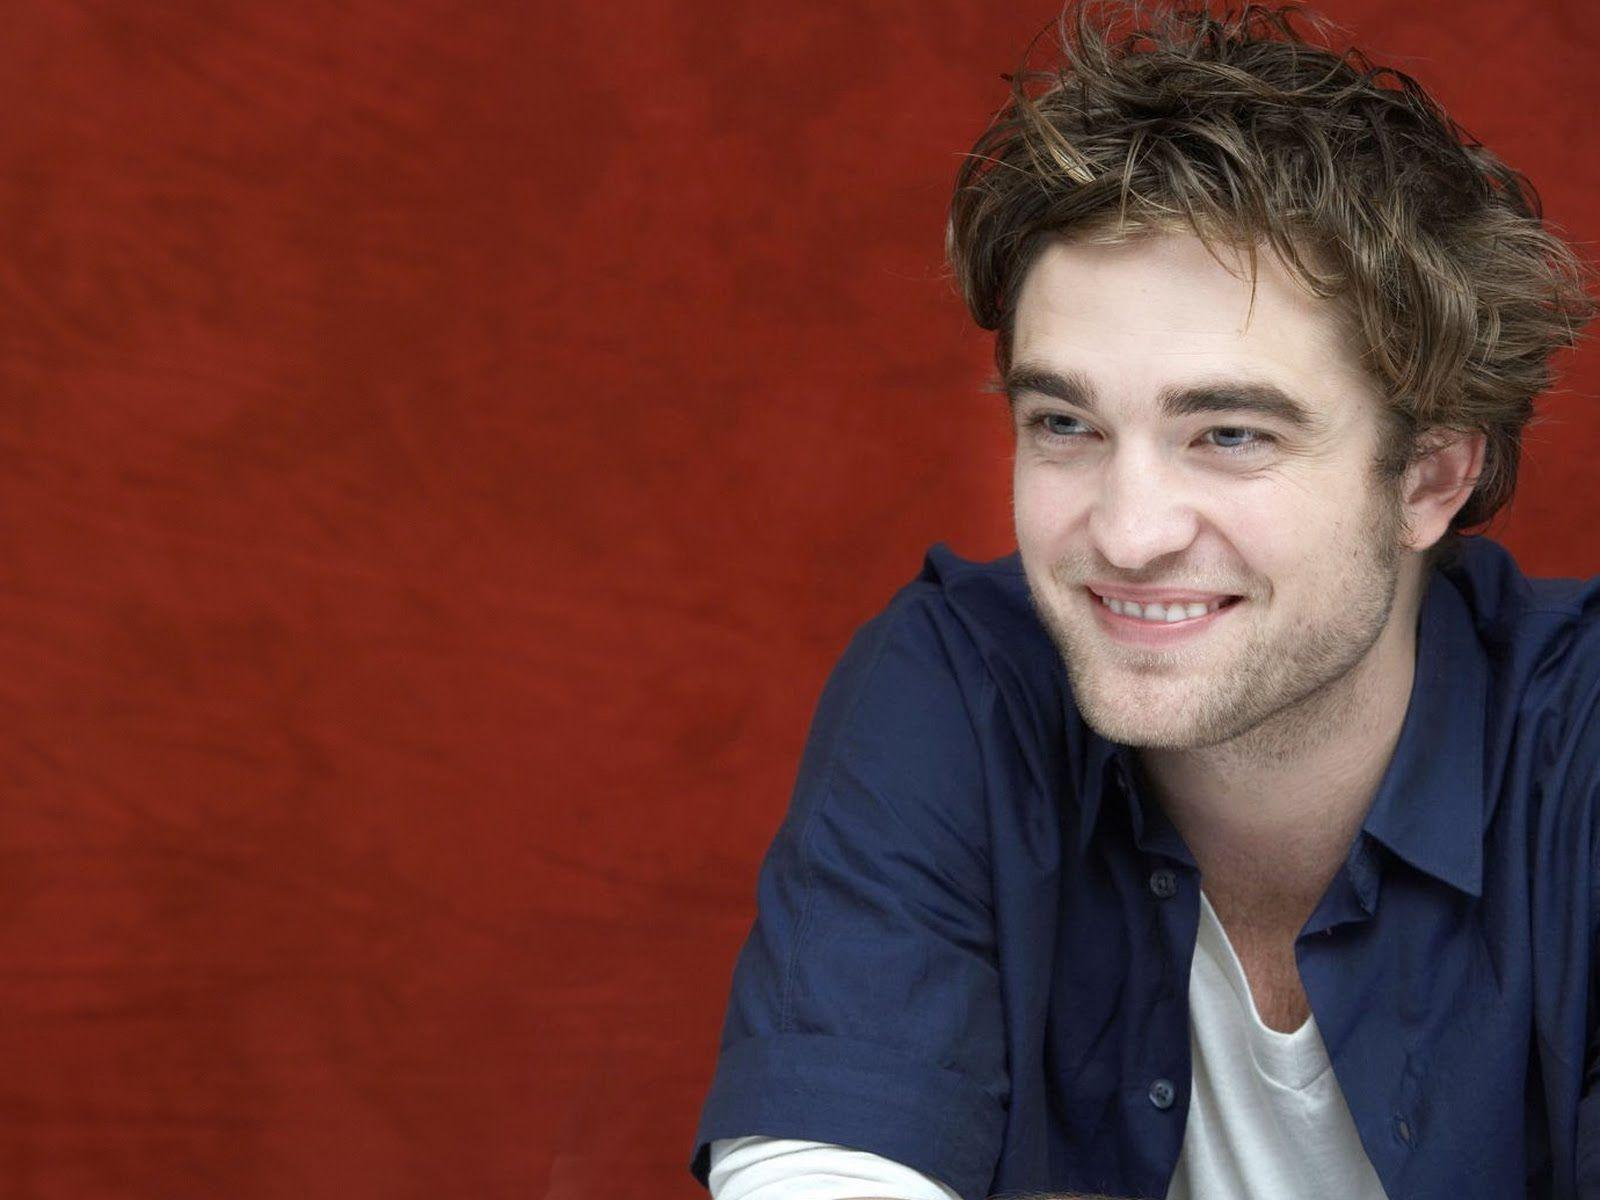 Robert Pattinson British Model, Film Producer, Musician, Child Actor